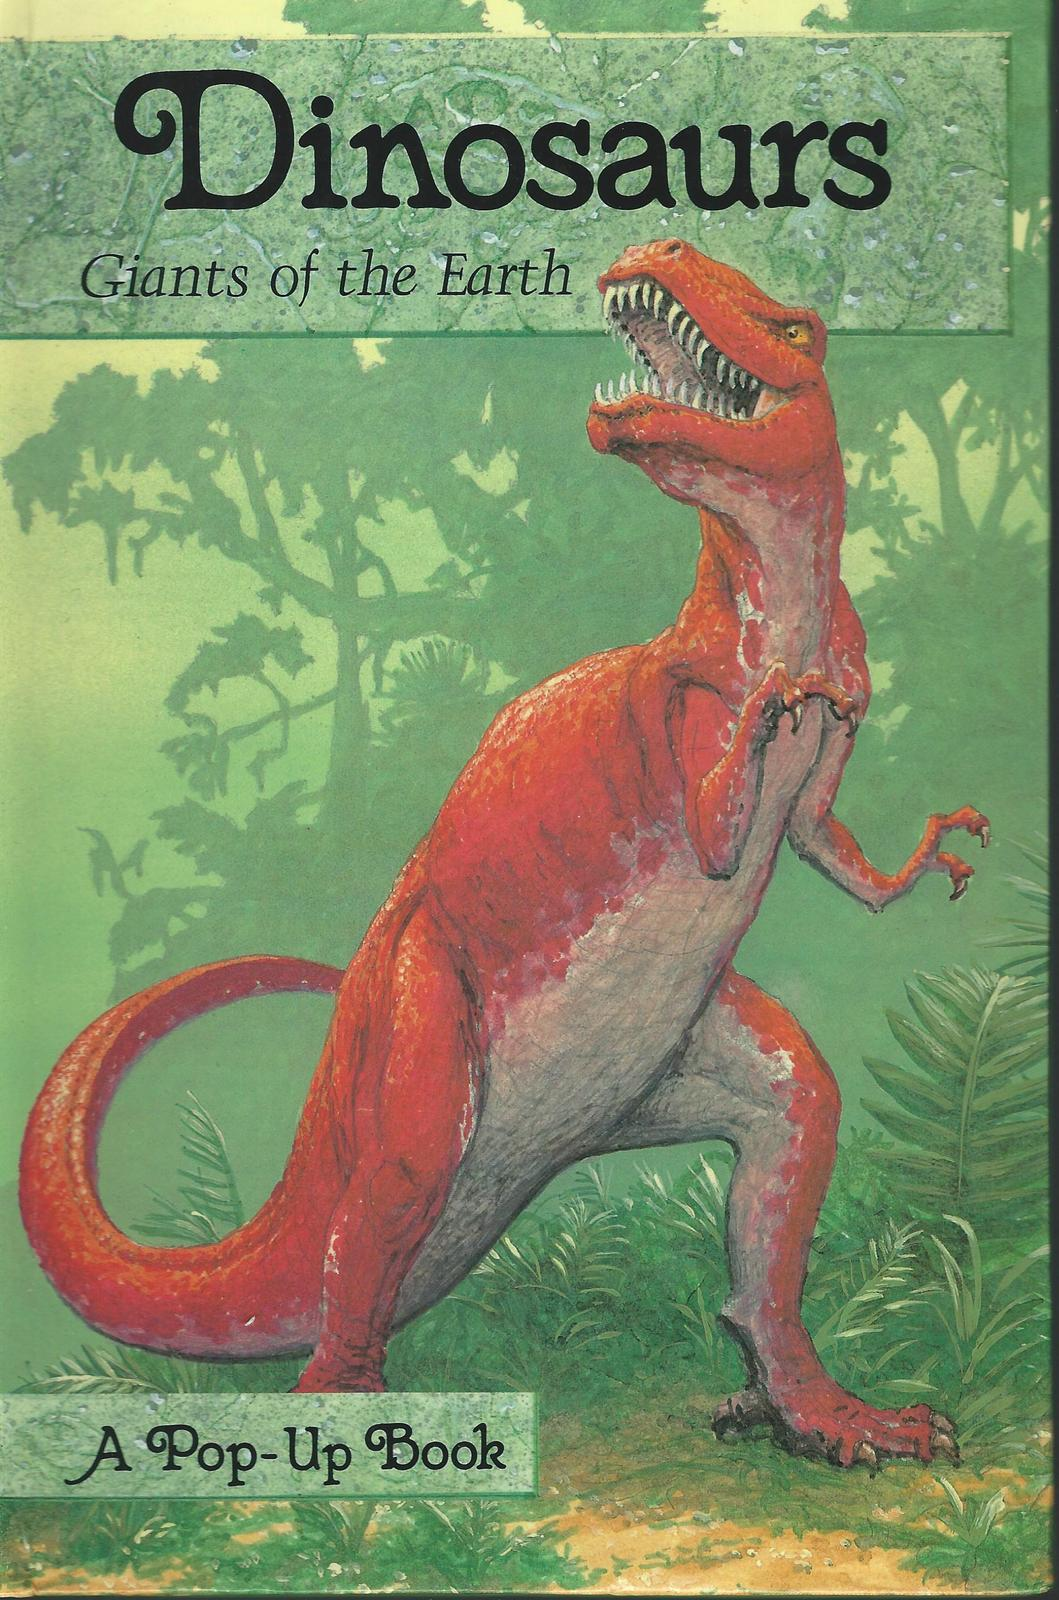 Dinosaurs giants of the earth 001